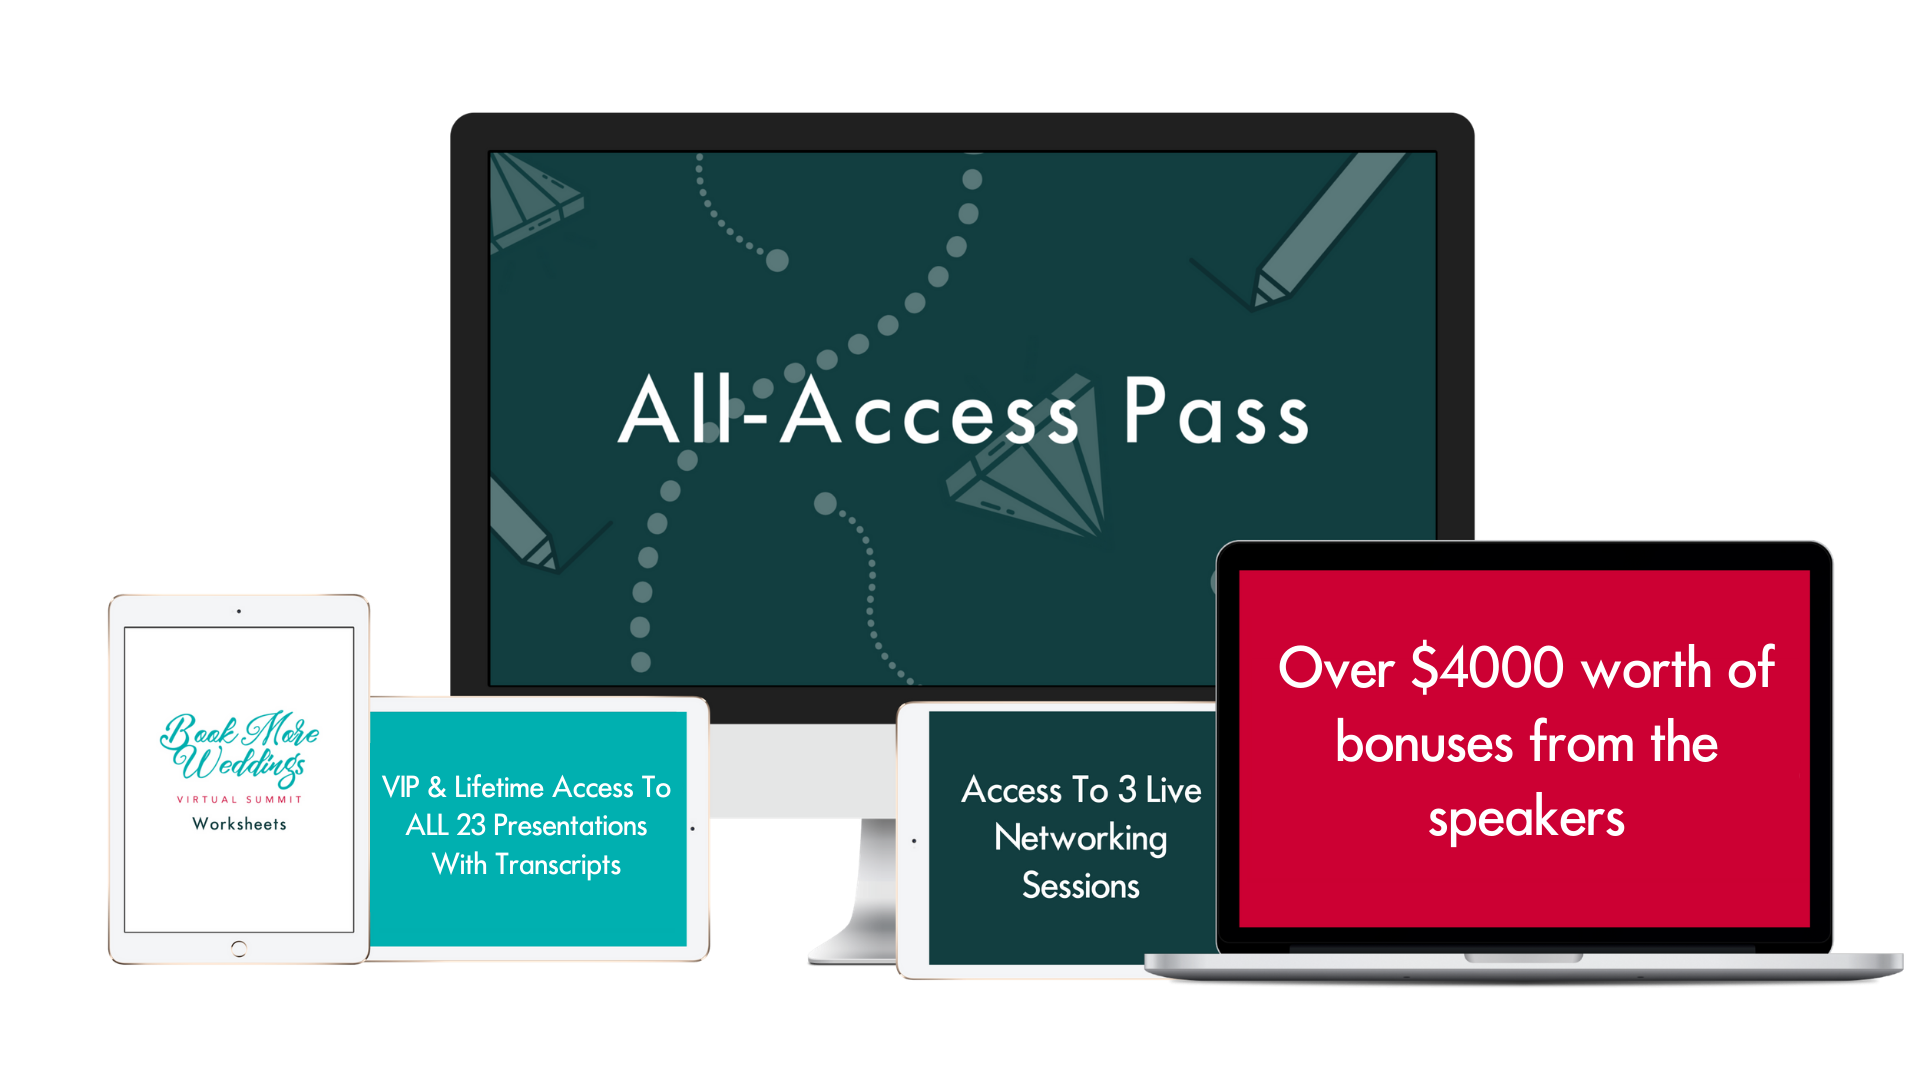 All-Access Pass Mockup December